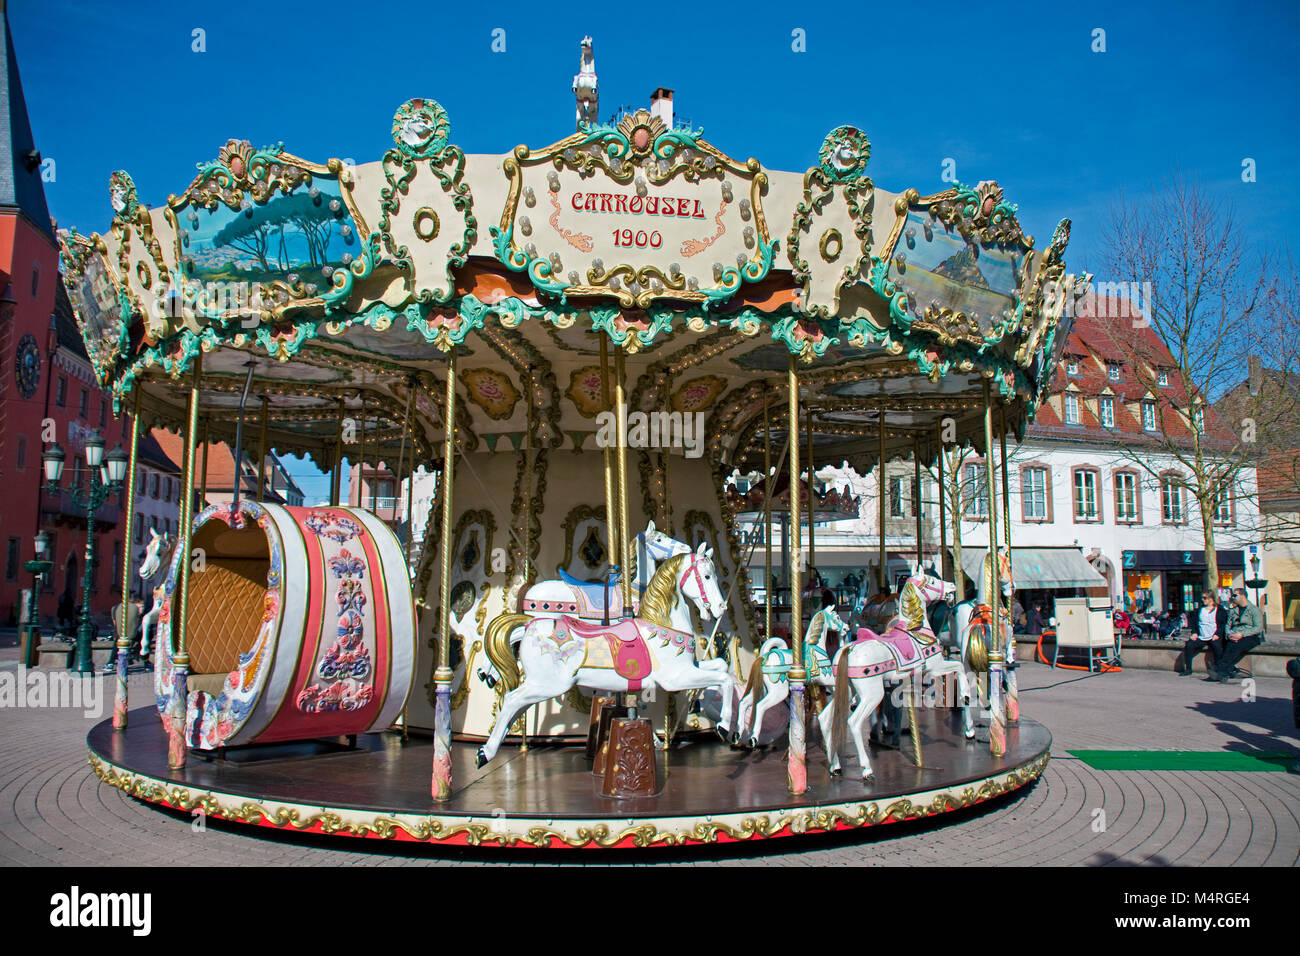 Old historical children's merry-go-round at Haguenau, Alsace, France, Europe - Stock Image